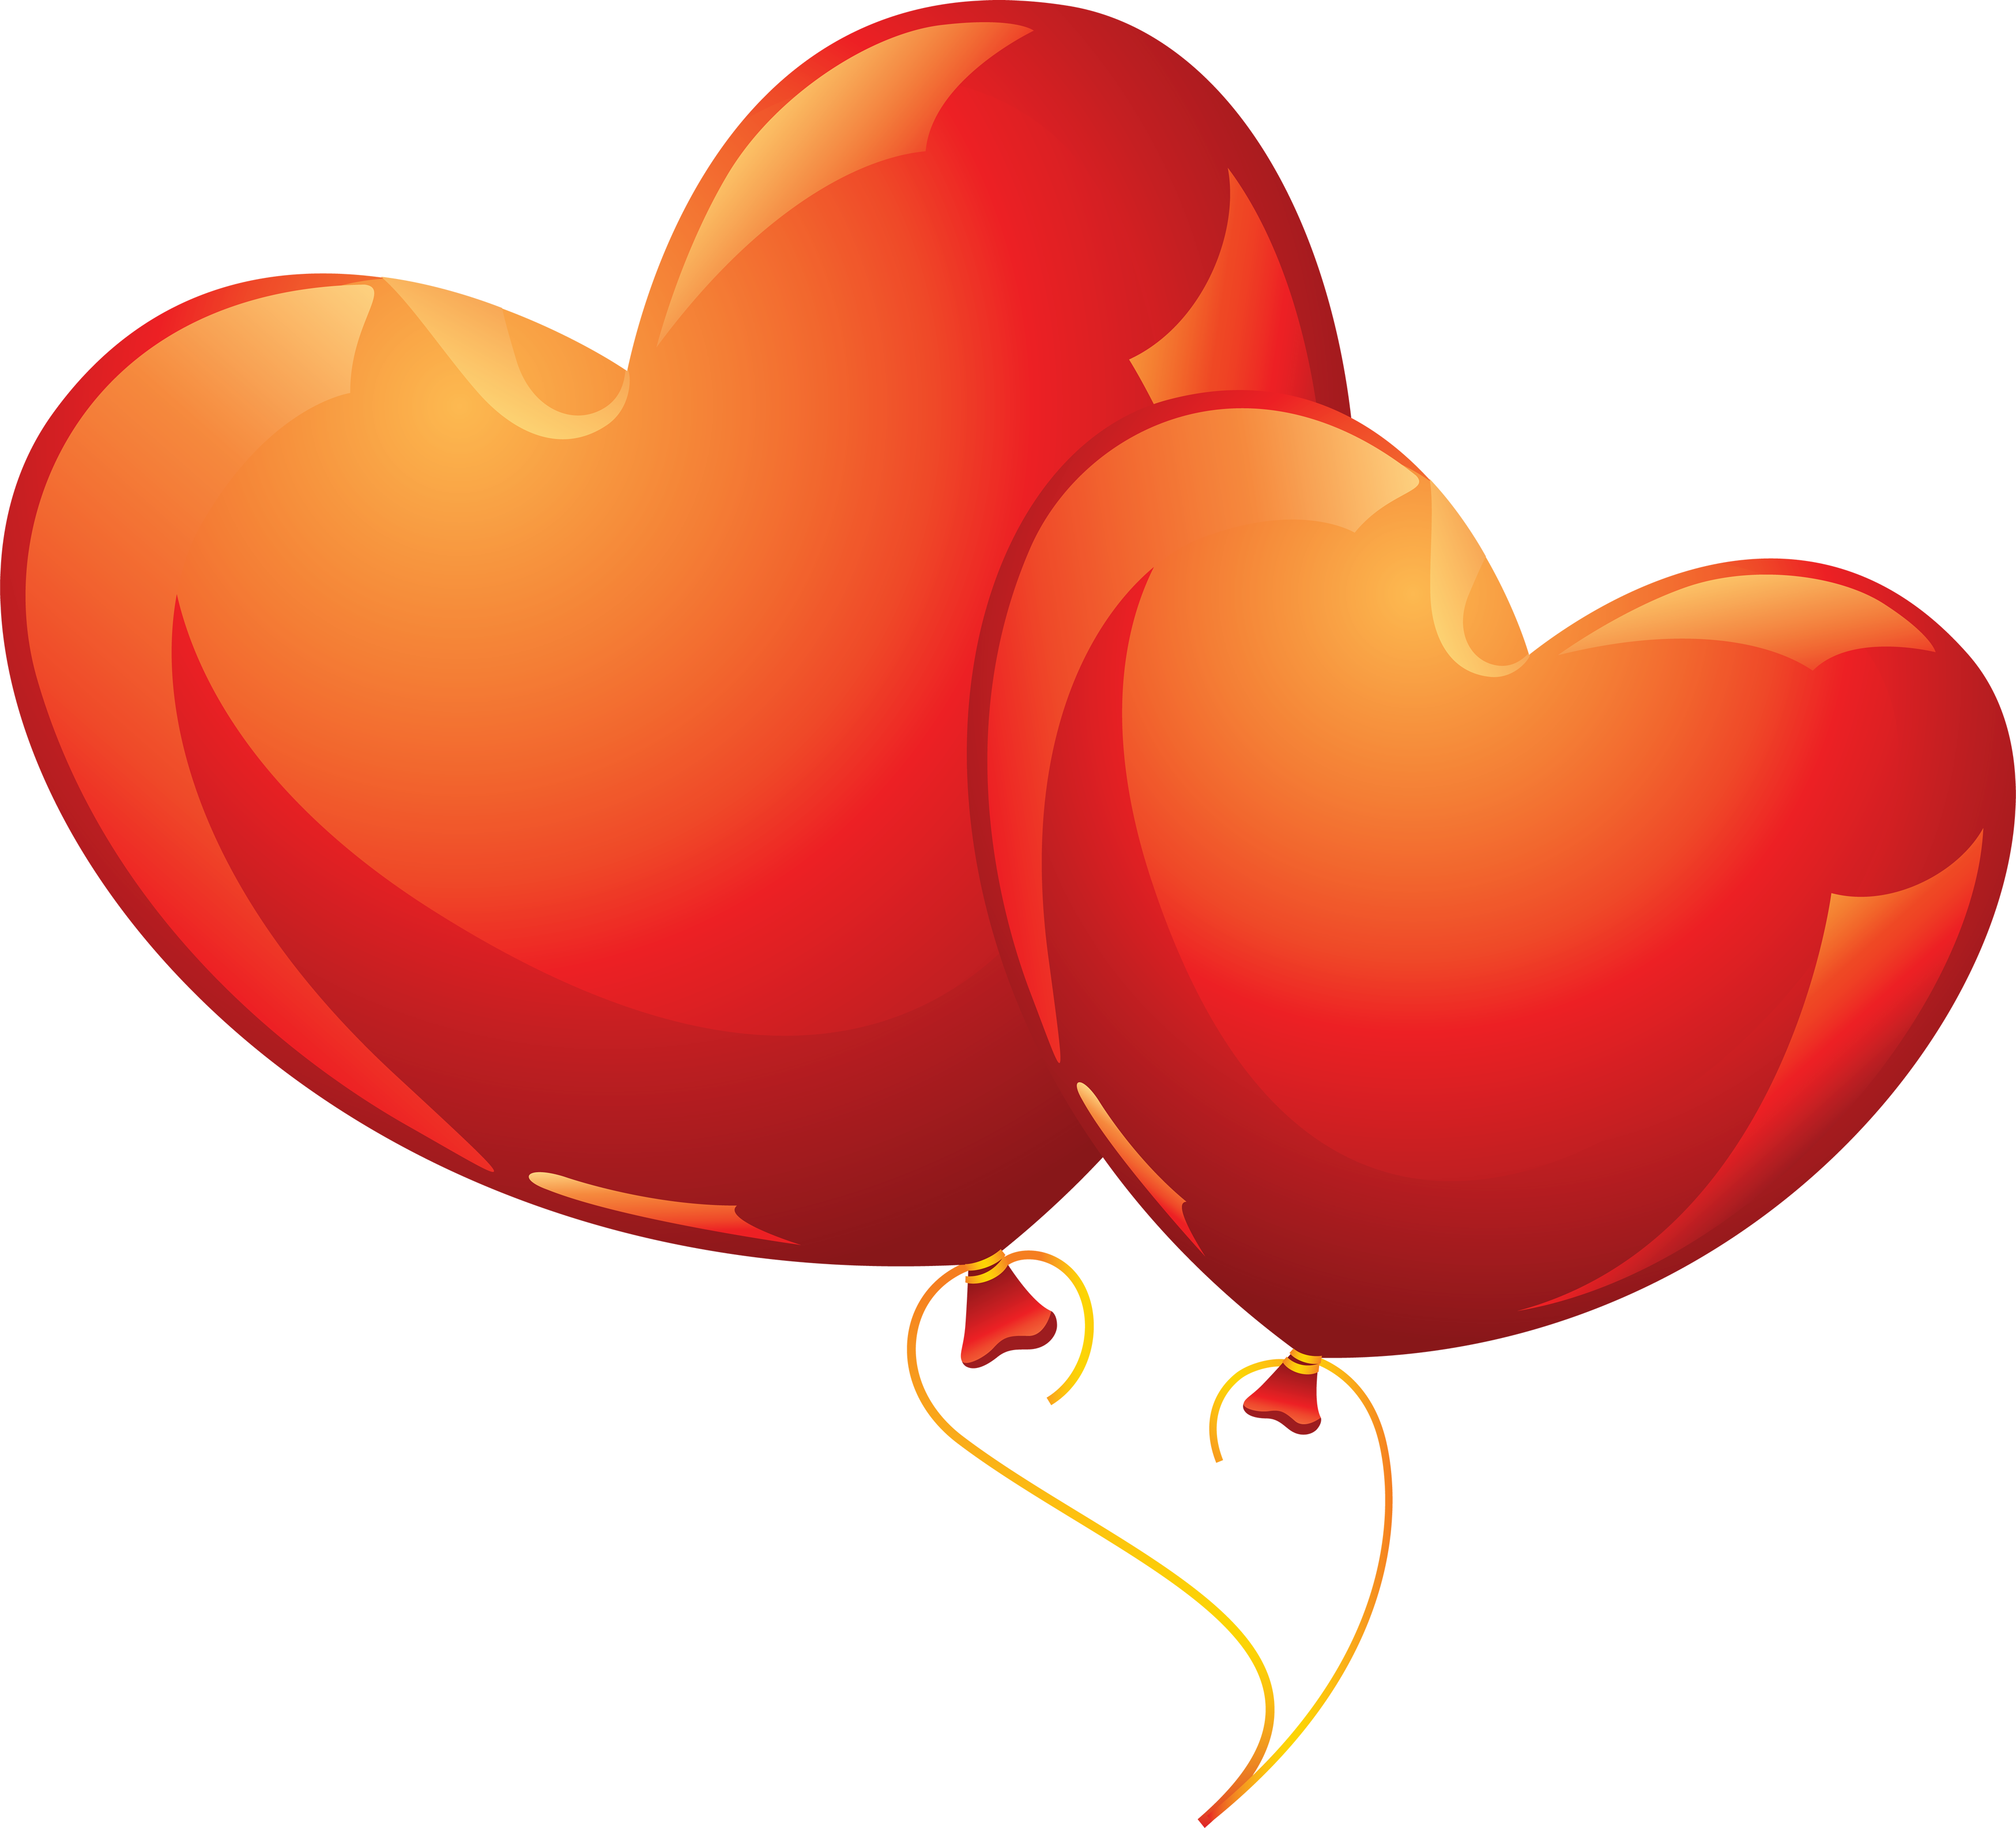 Balloon images picture with. Png pictures free download clipart free library